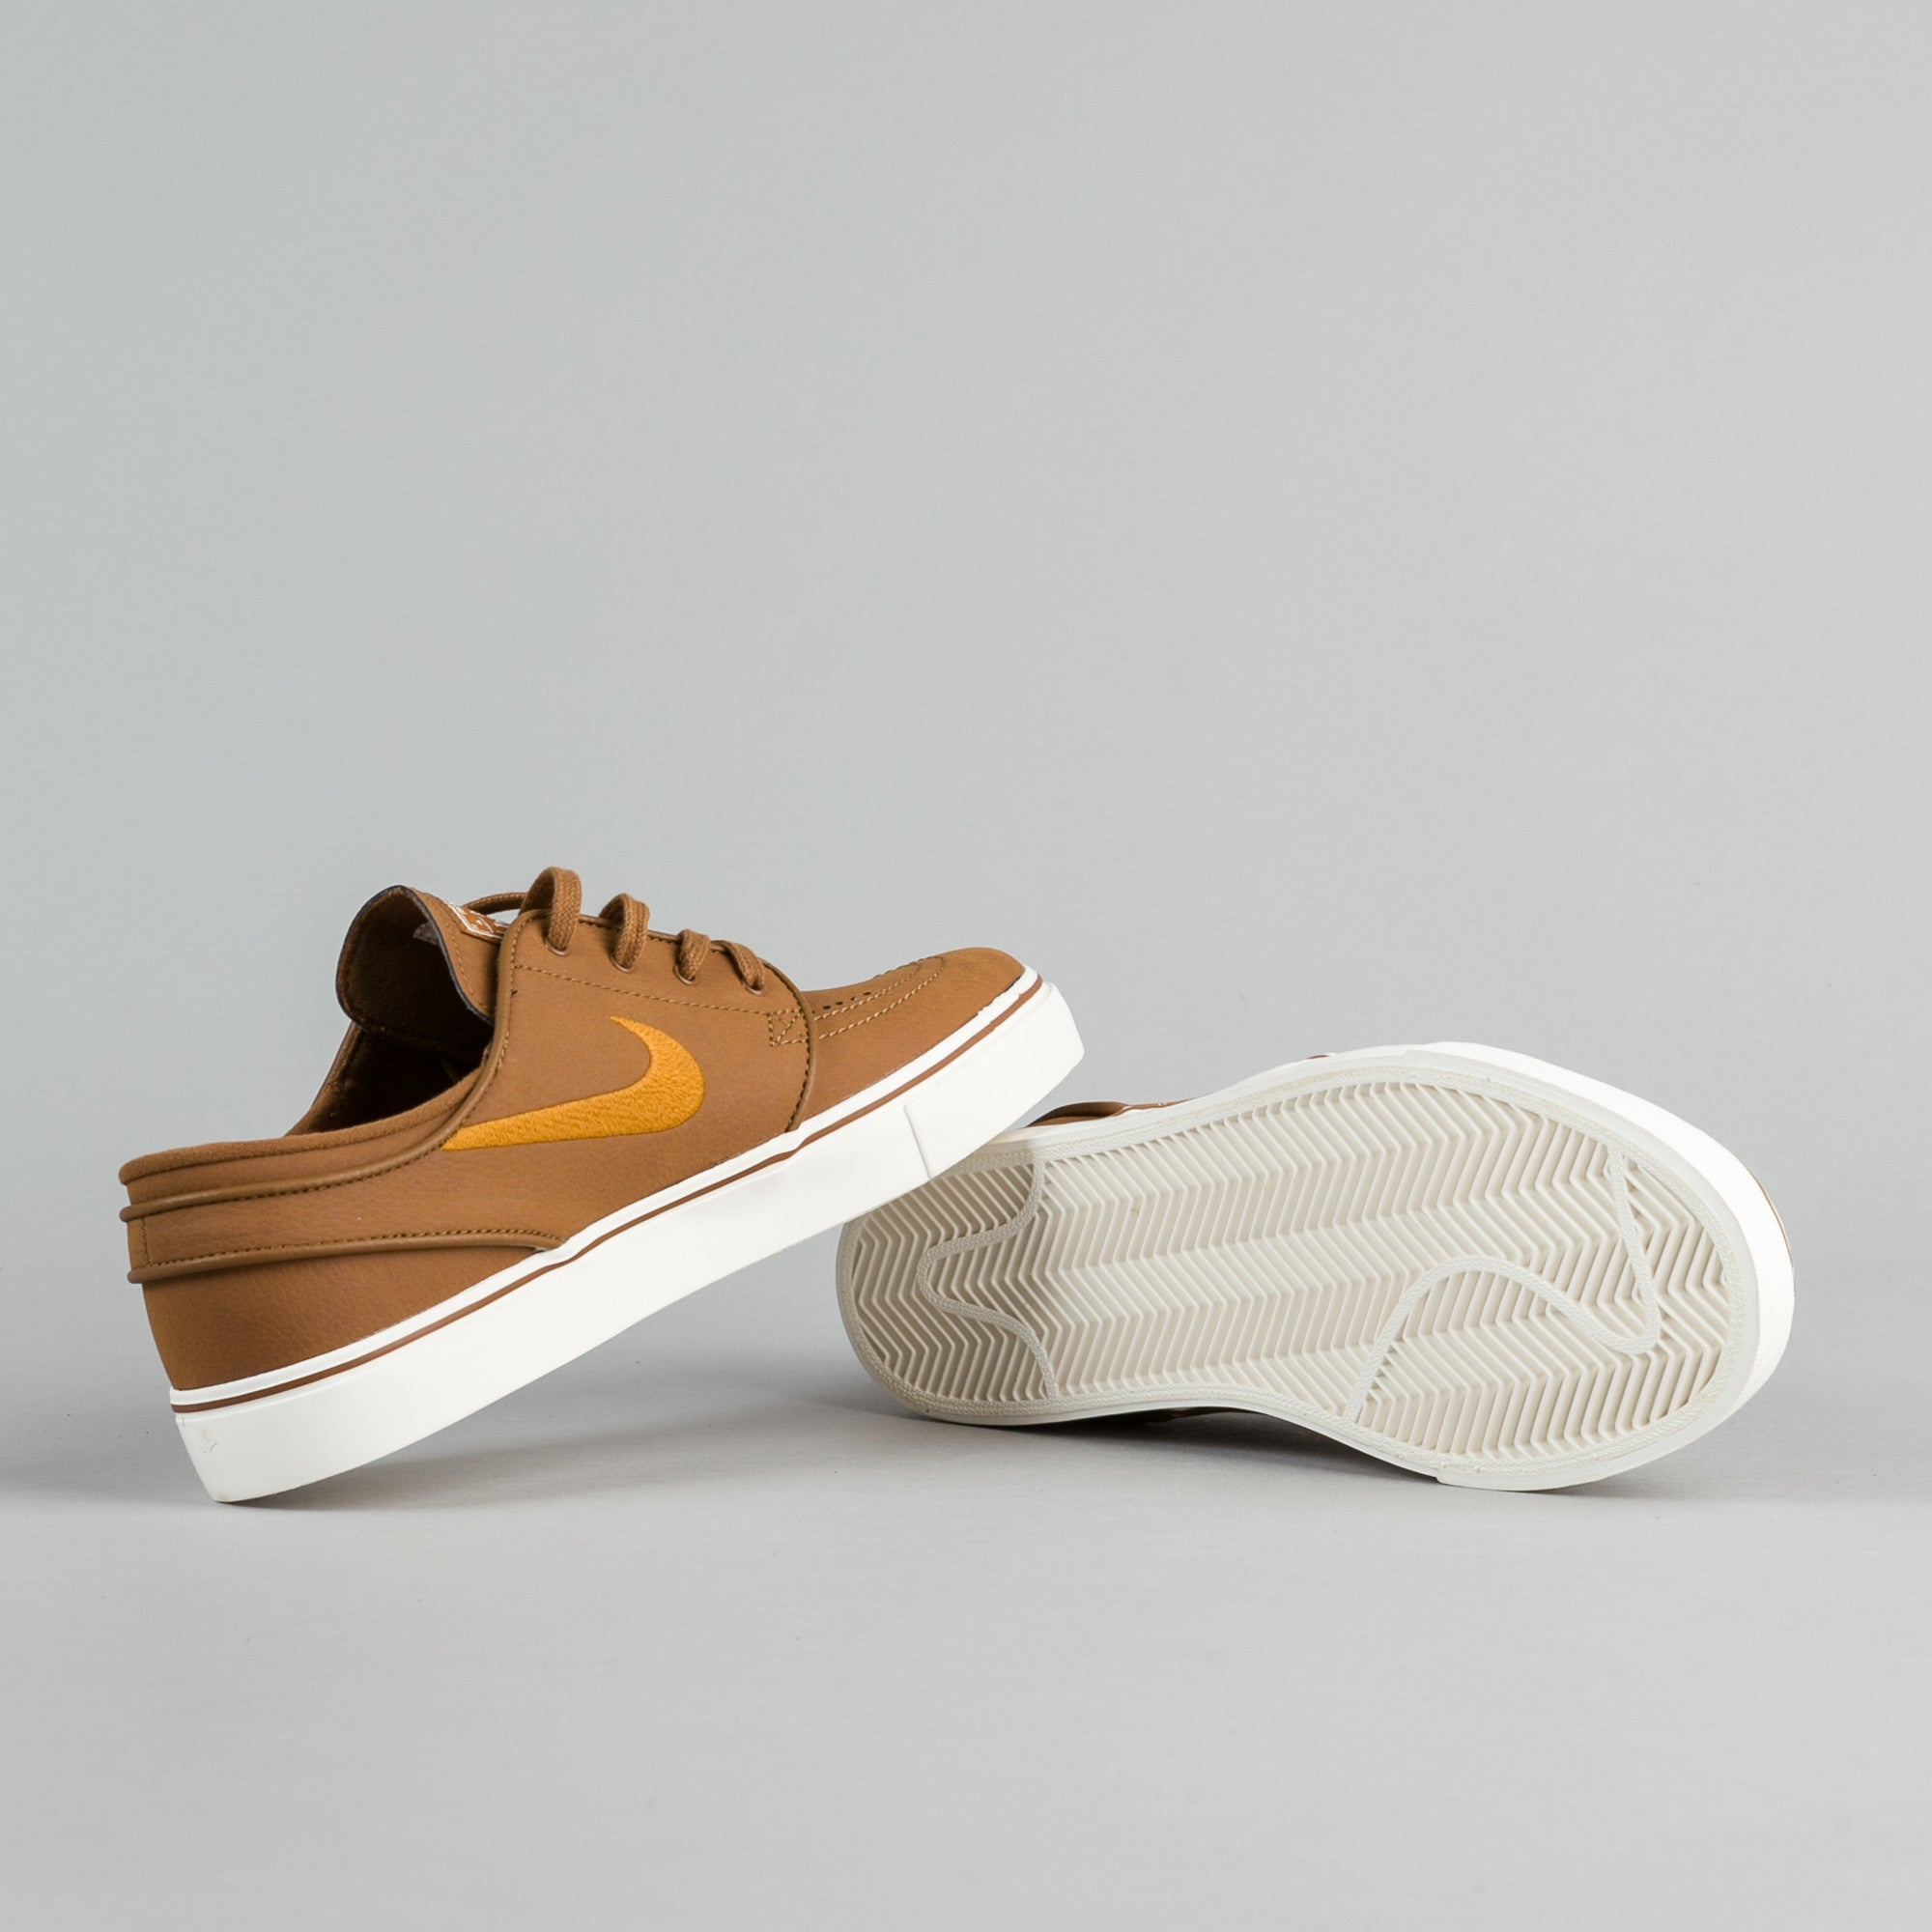 Nike SB Stefan Janoski Leather Shoes - Ale Brown / Desert Ochre - Sail